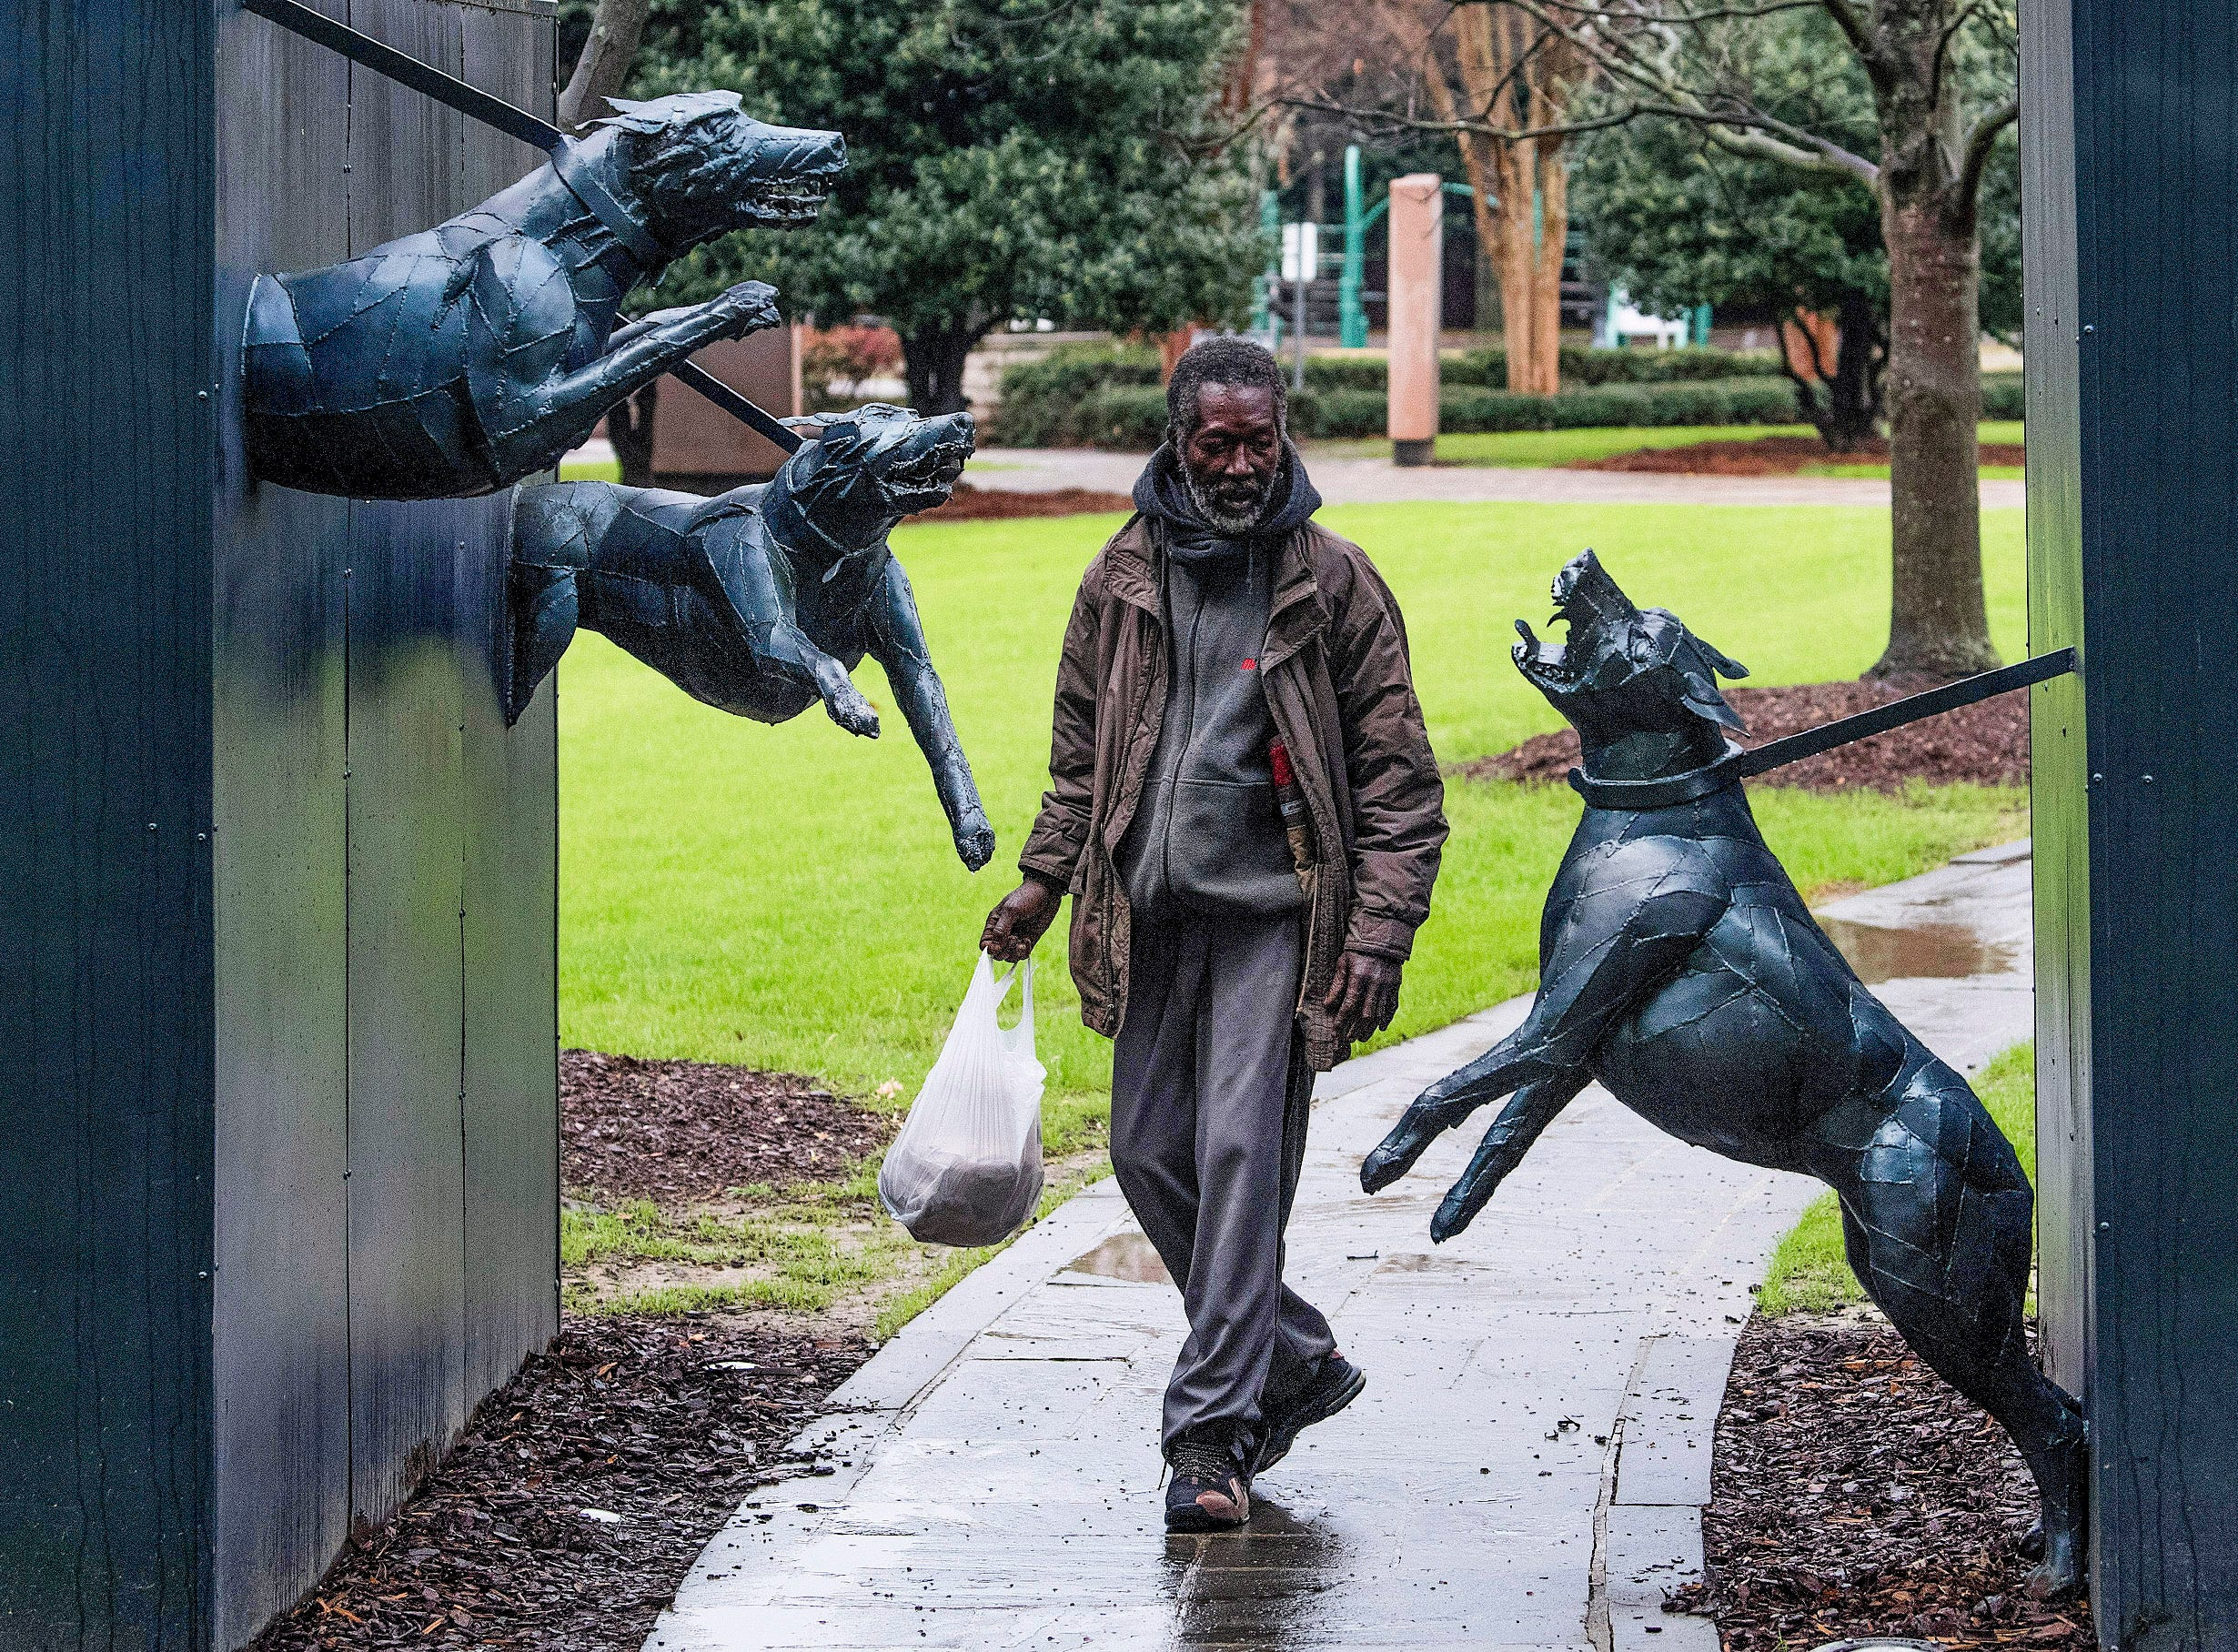 Joe, who likes to hang out in historic Kelly Ingram Park in Birmingham, Ala., and point out the civil rights statues for tips, walks through the police dog statue on Thursday March 1, 2018.